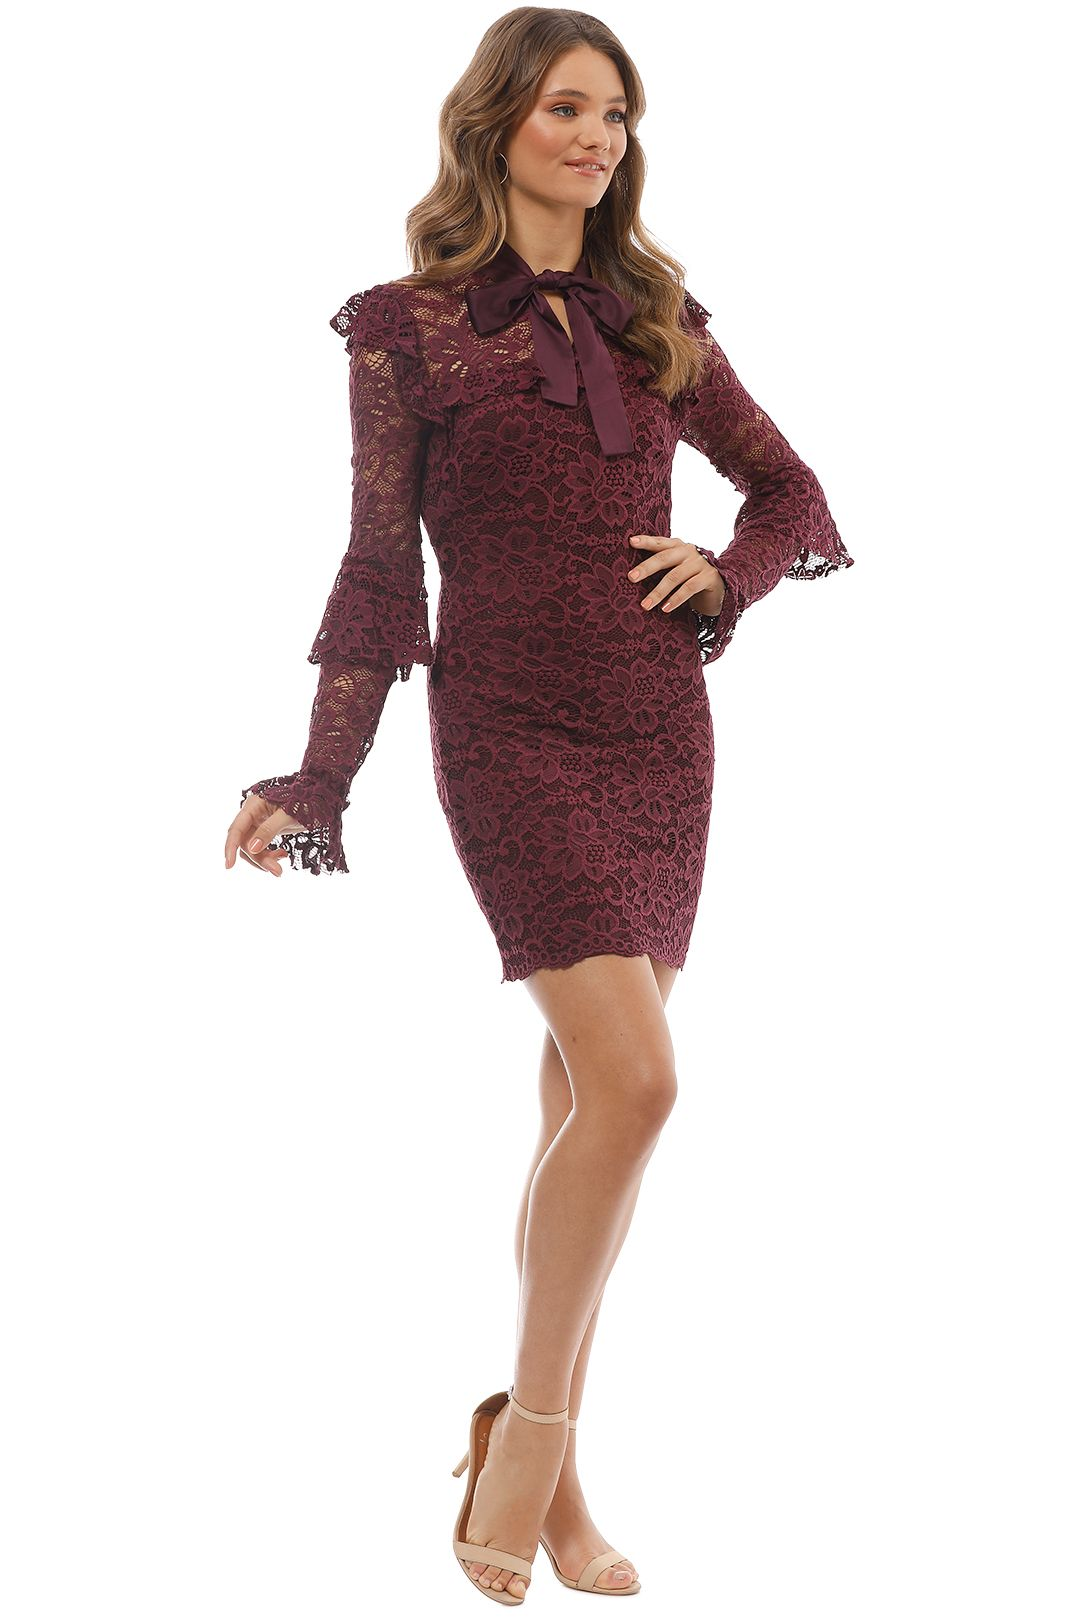 Pasduchas - Winsome Dress - Red Wine - Side